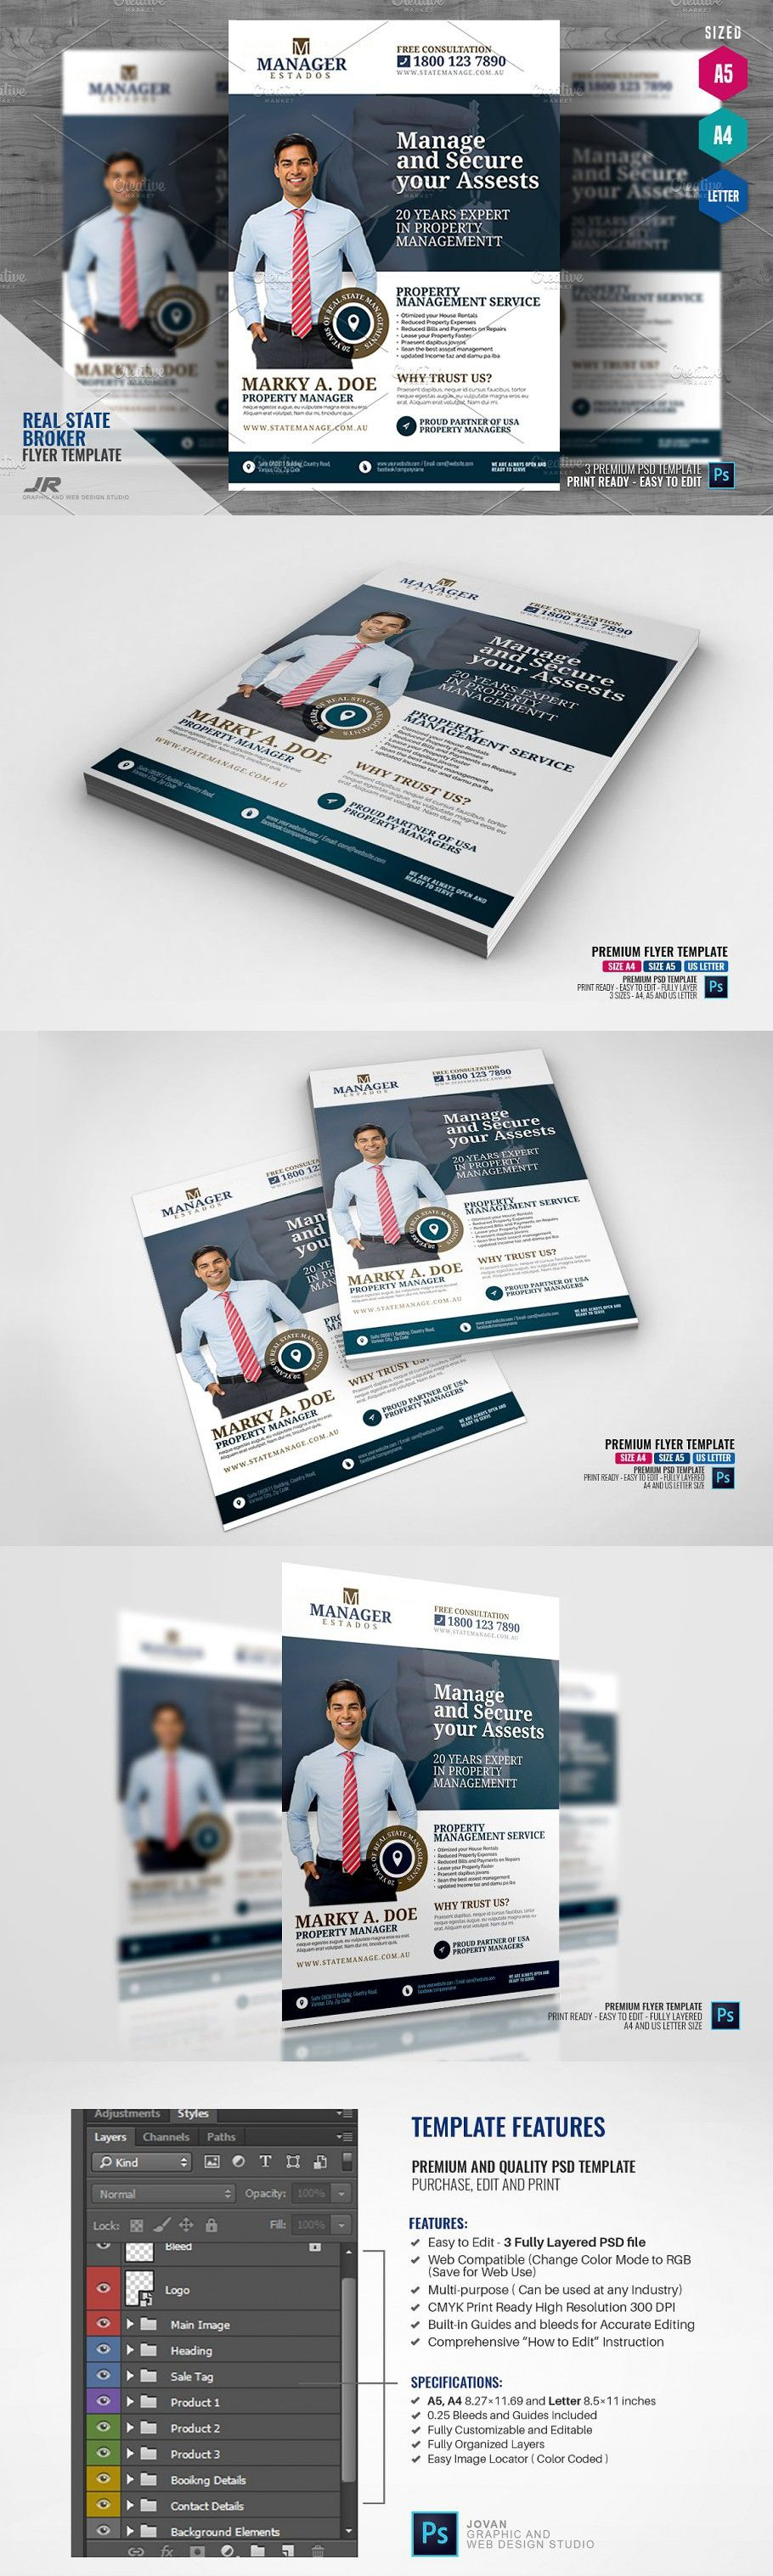 Property Management And Real Estate Property Management Flyer Design Templates Real Estate Flyers